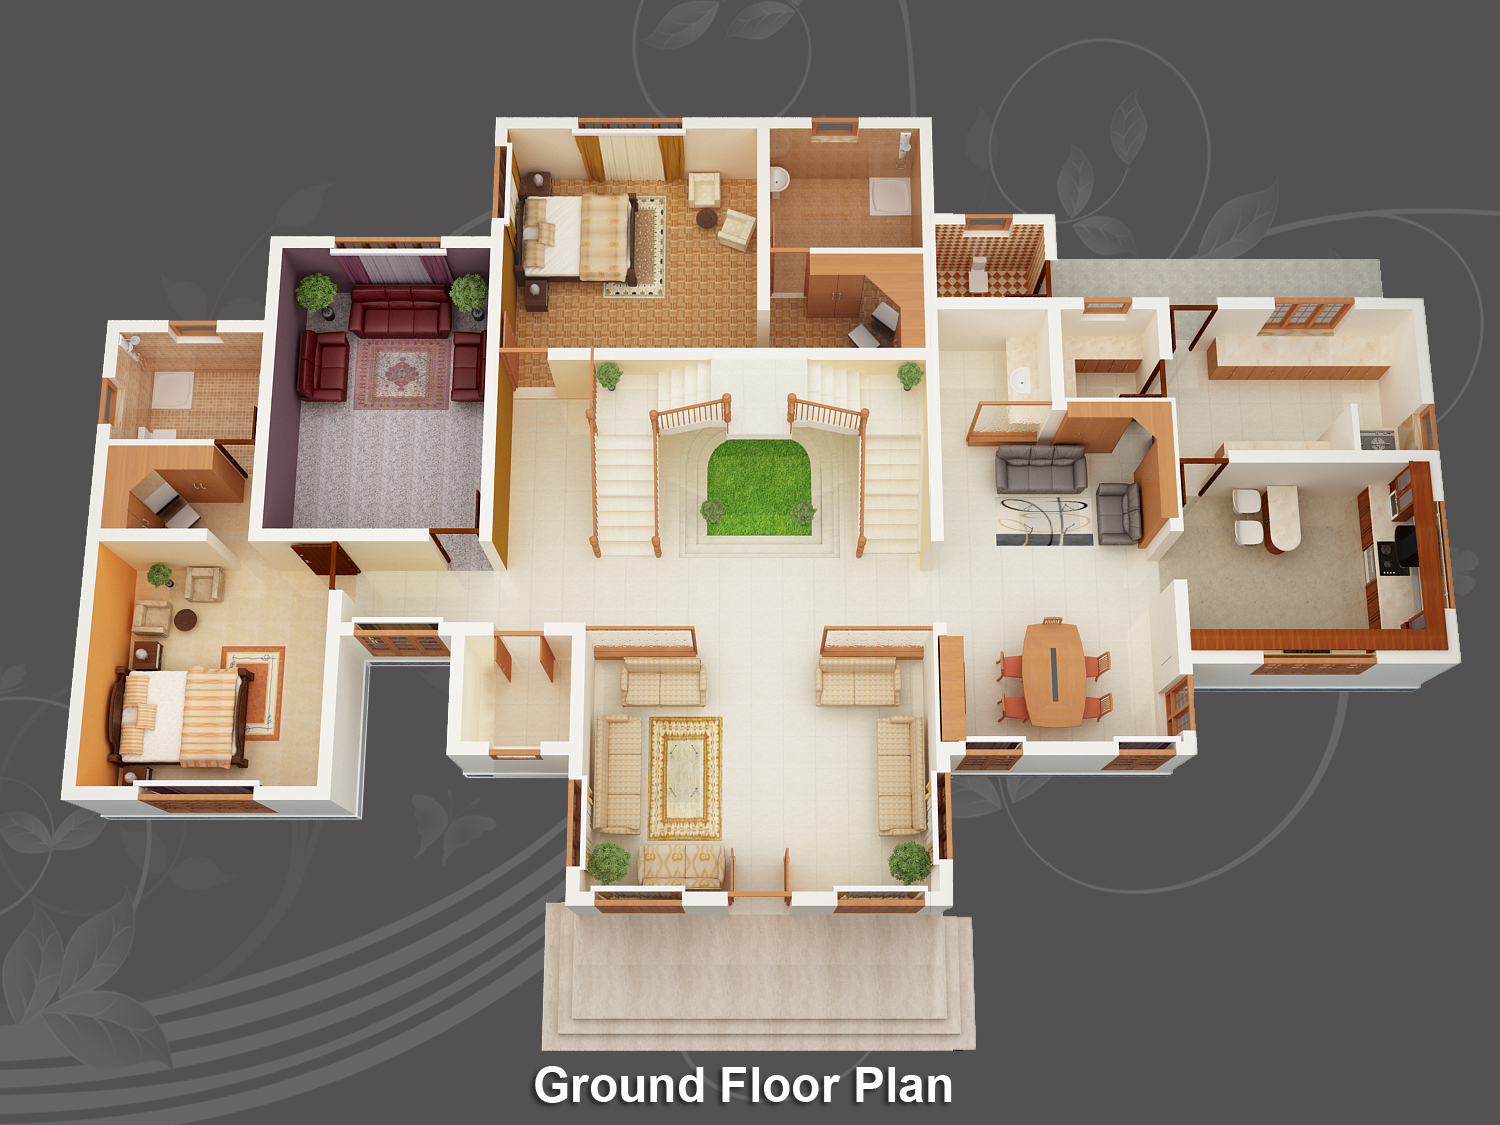 Evens construction pvt ltd 3d house plan 20 05 2011 Home design plans 3d